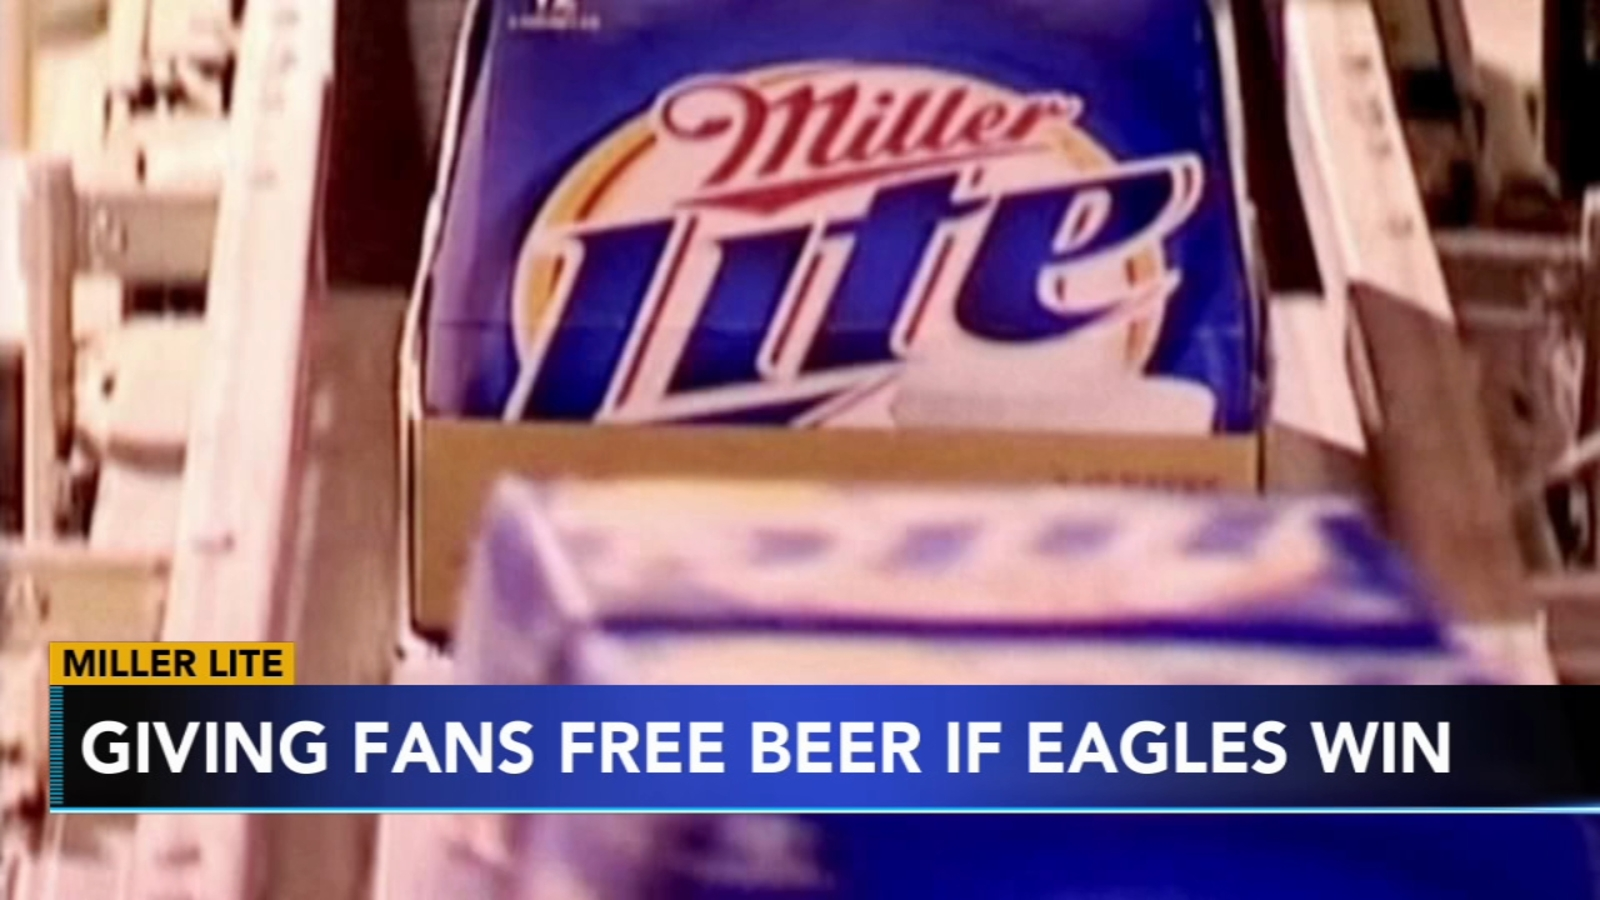 NFL Playoffs: Miller Lite offering Philadelphia Eagles fans free beer with a win | 6abc.com